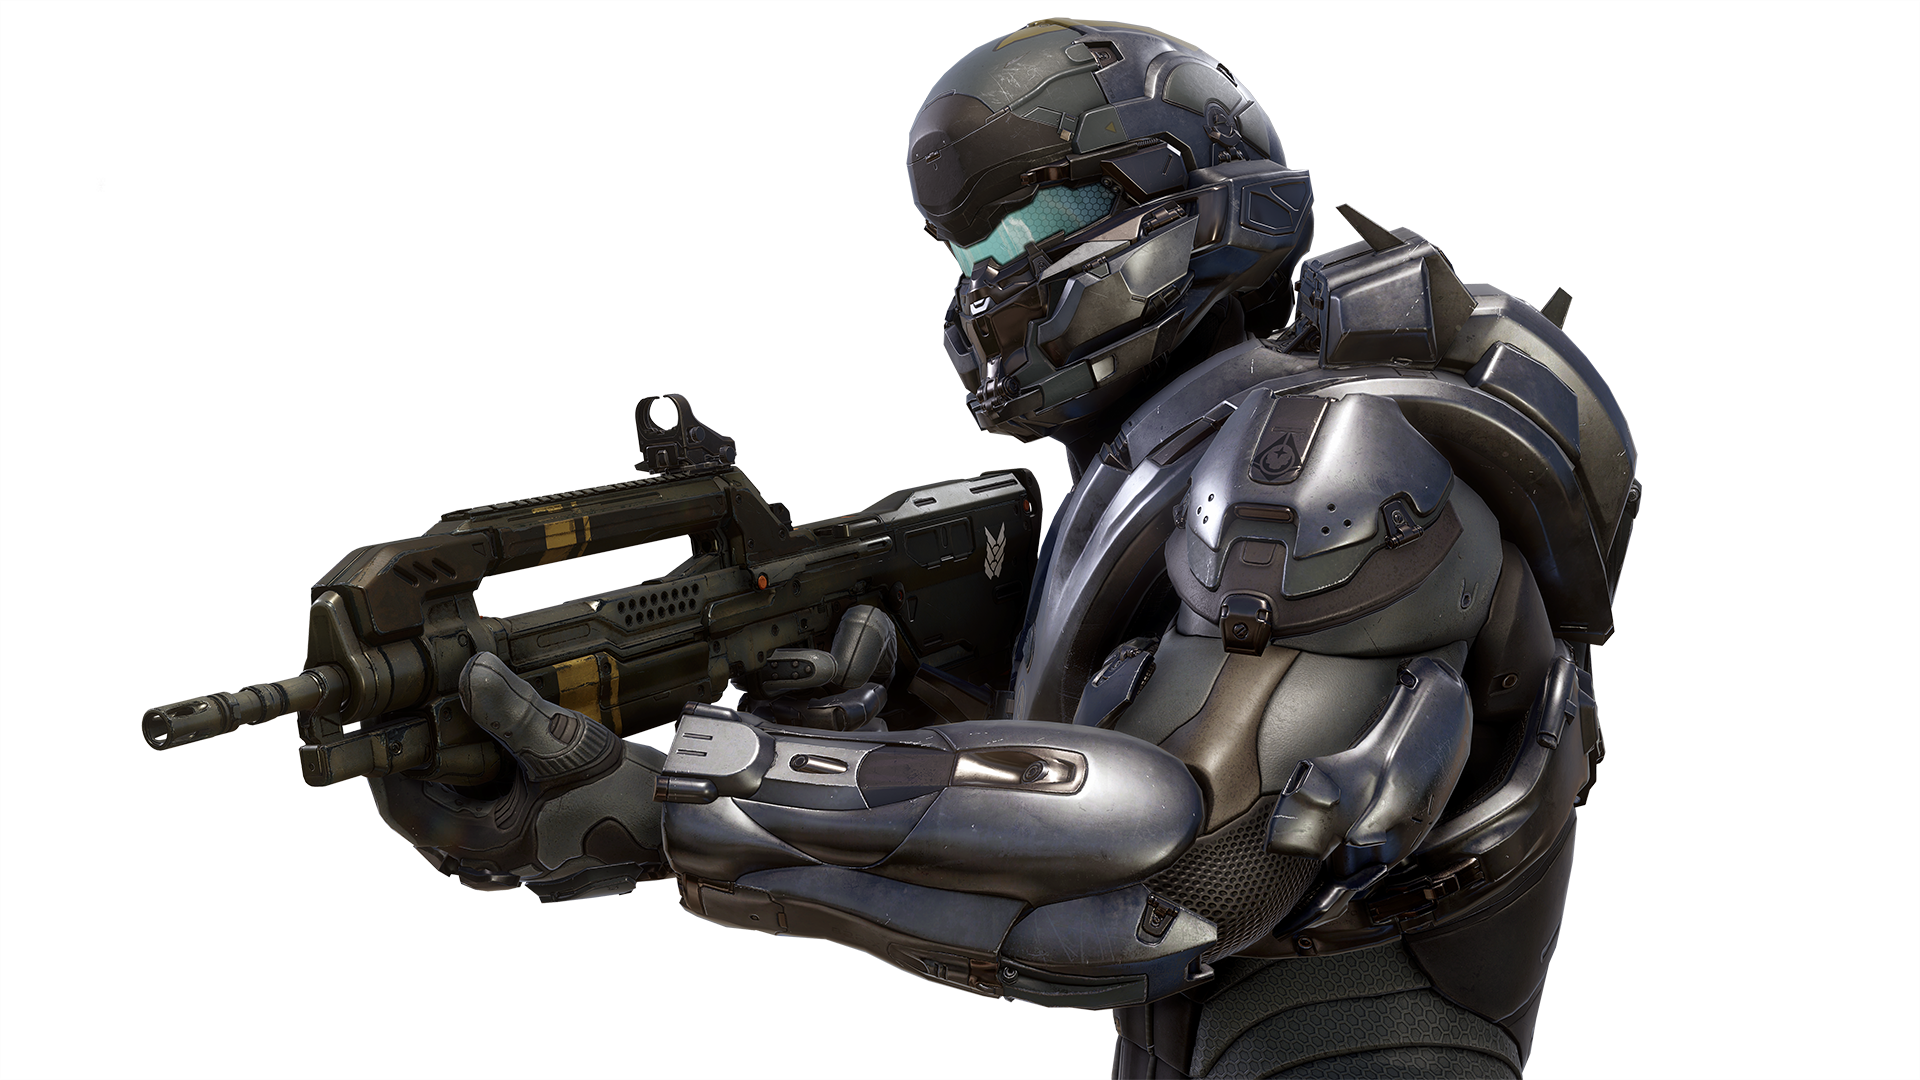 Halo 5 Official Images Character Renders Halofanforlife Halo 5 Halo 5 Guardians Halo